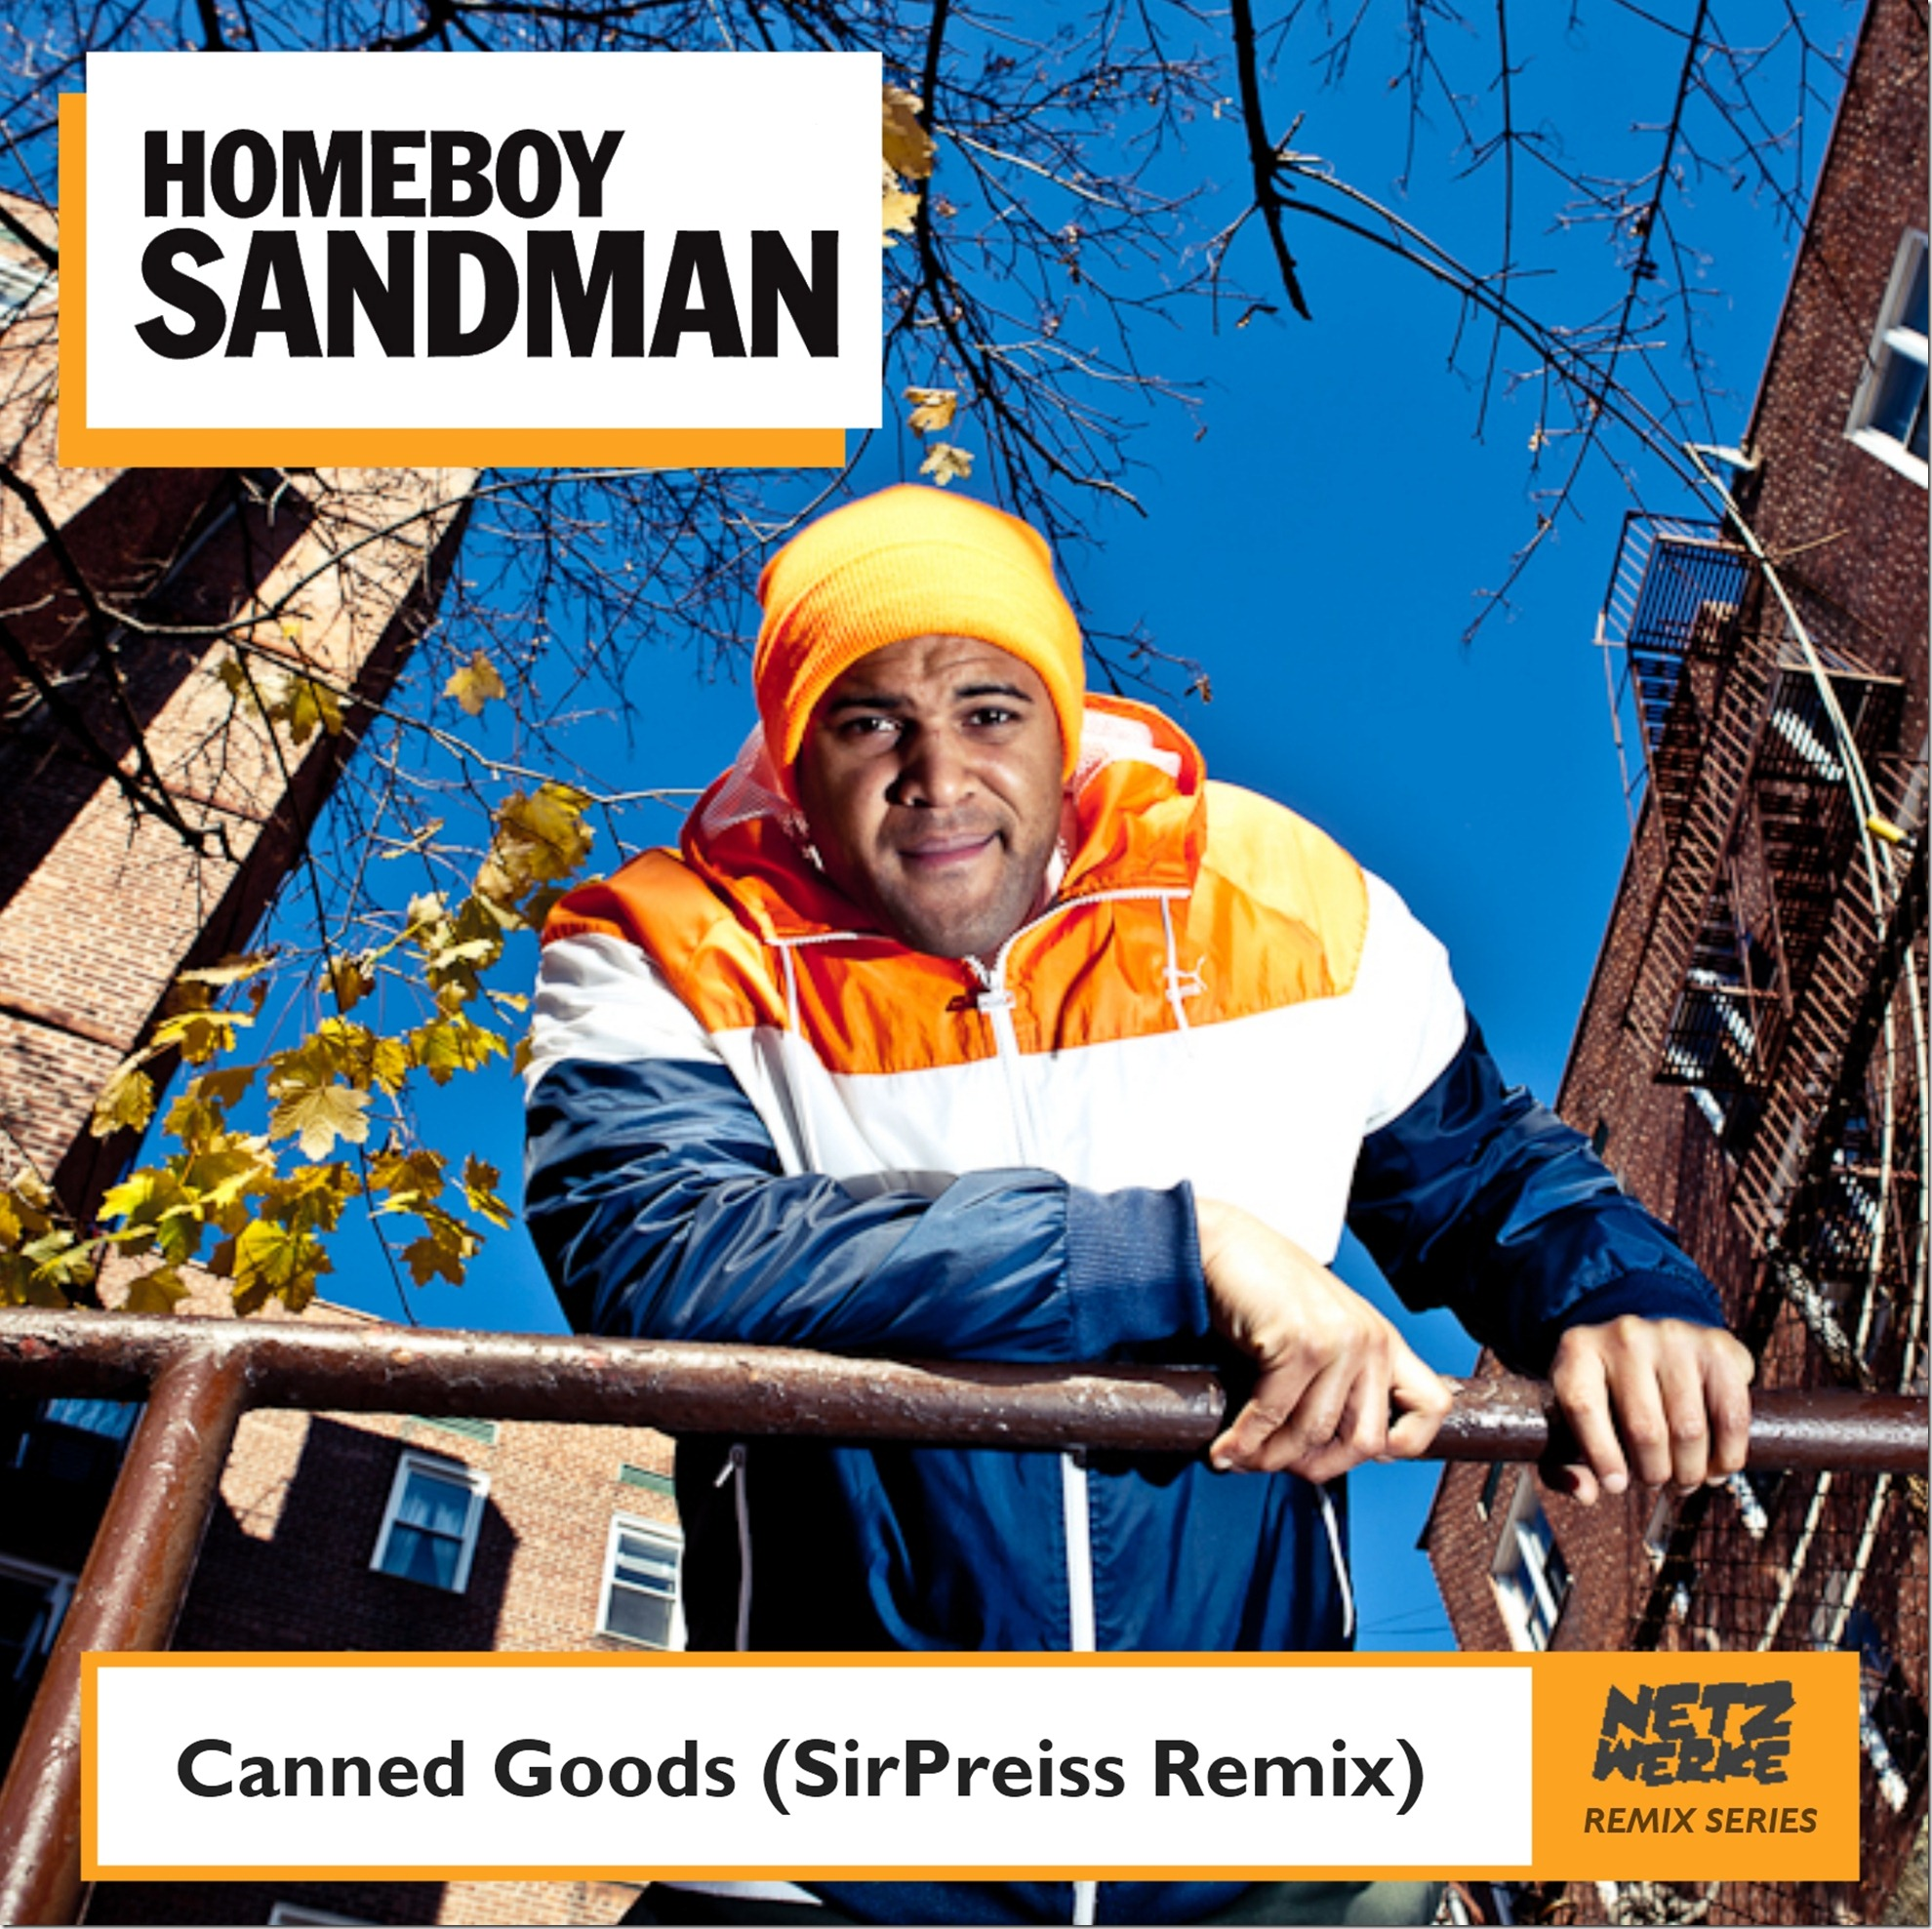 Homeboy Sandman - Canned Goods (SirPreiss Remix) Cover